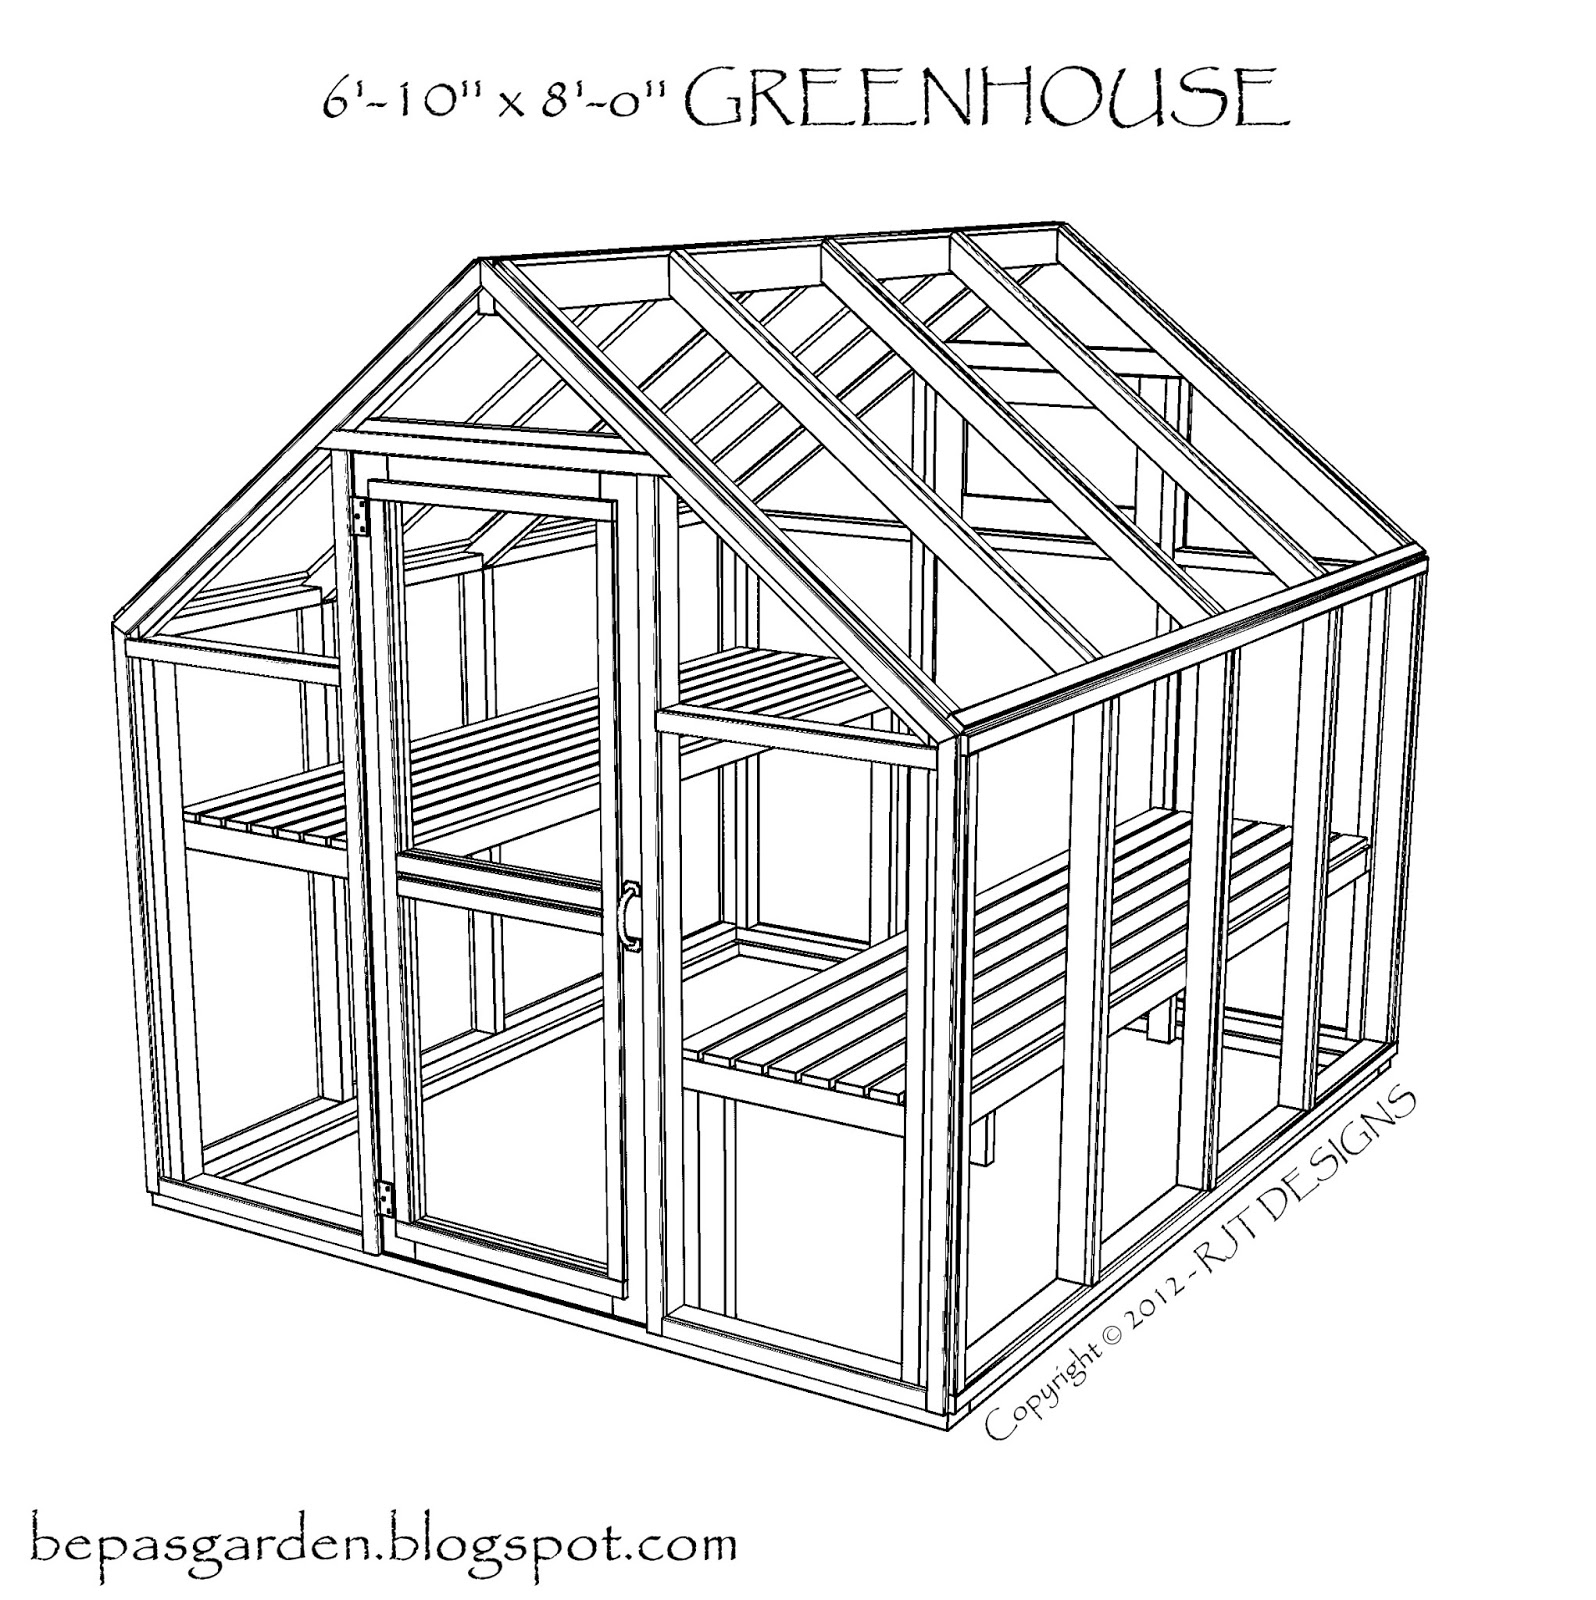 Bepa 39 s garden pdf version of greenhouse plans now available for Greenhouse design plans